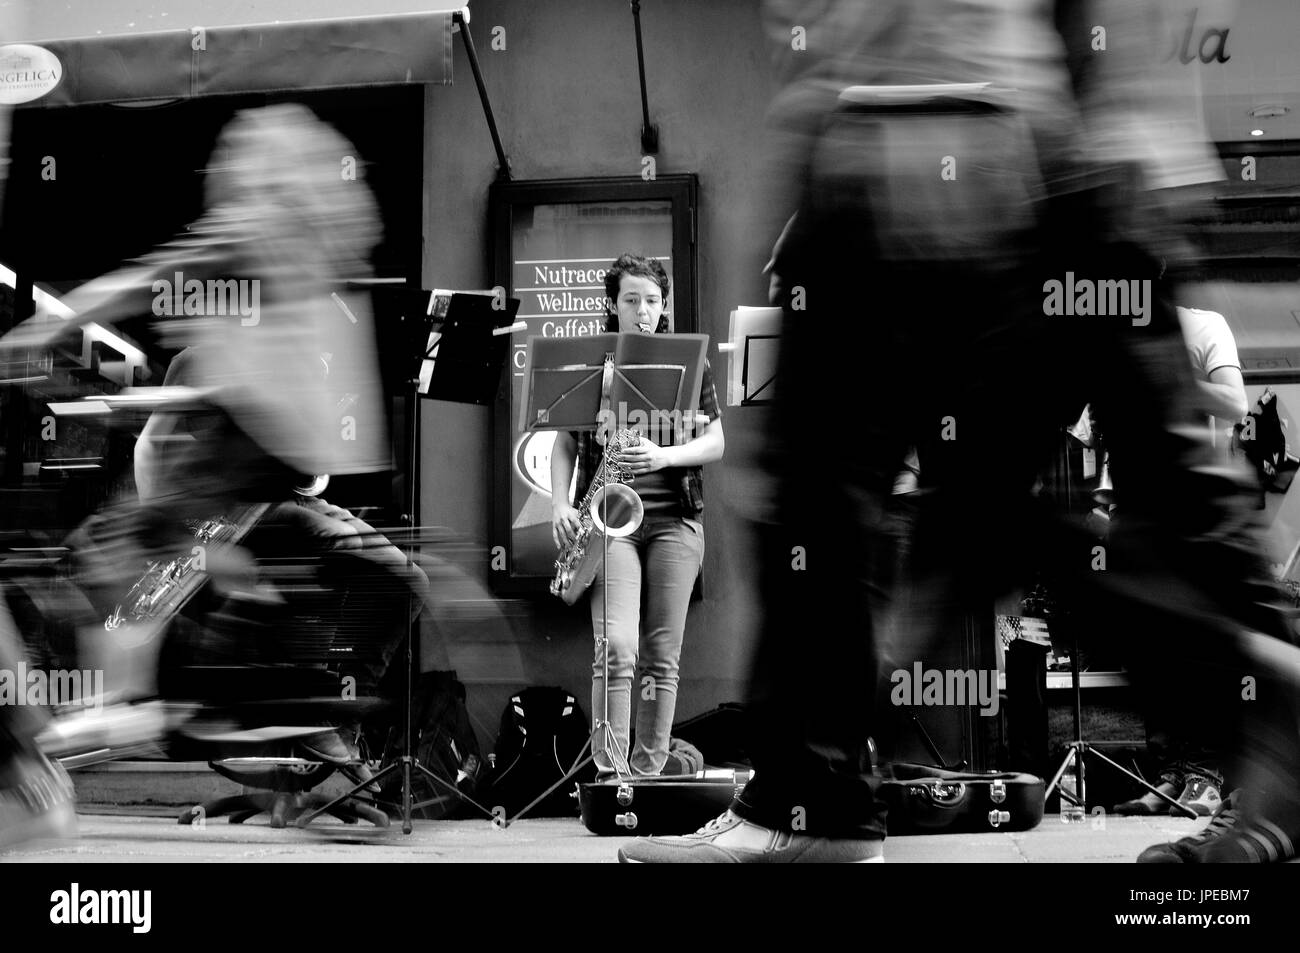 Bologna street photography. Musicians perform on the street in front of public on the move. - Stock Image